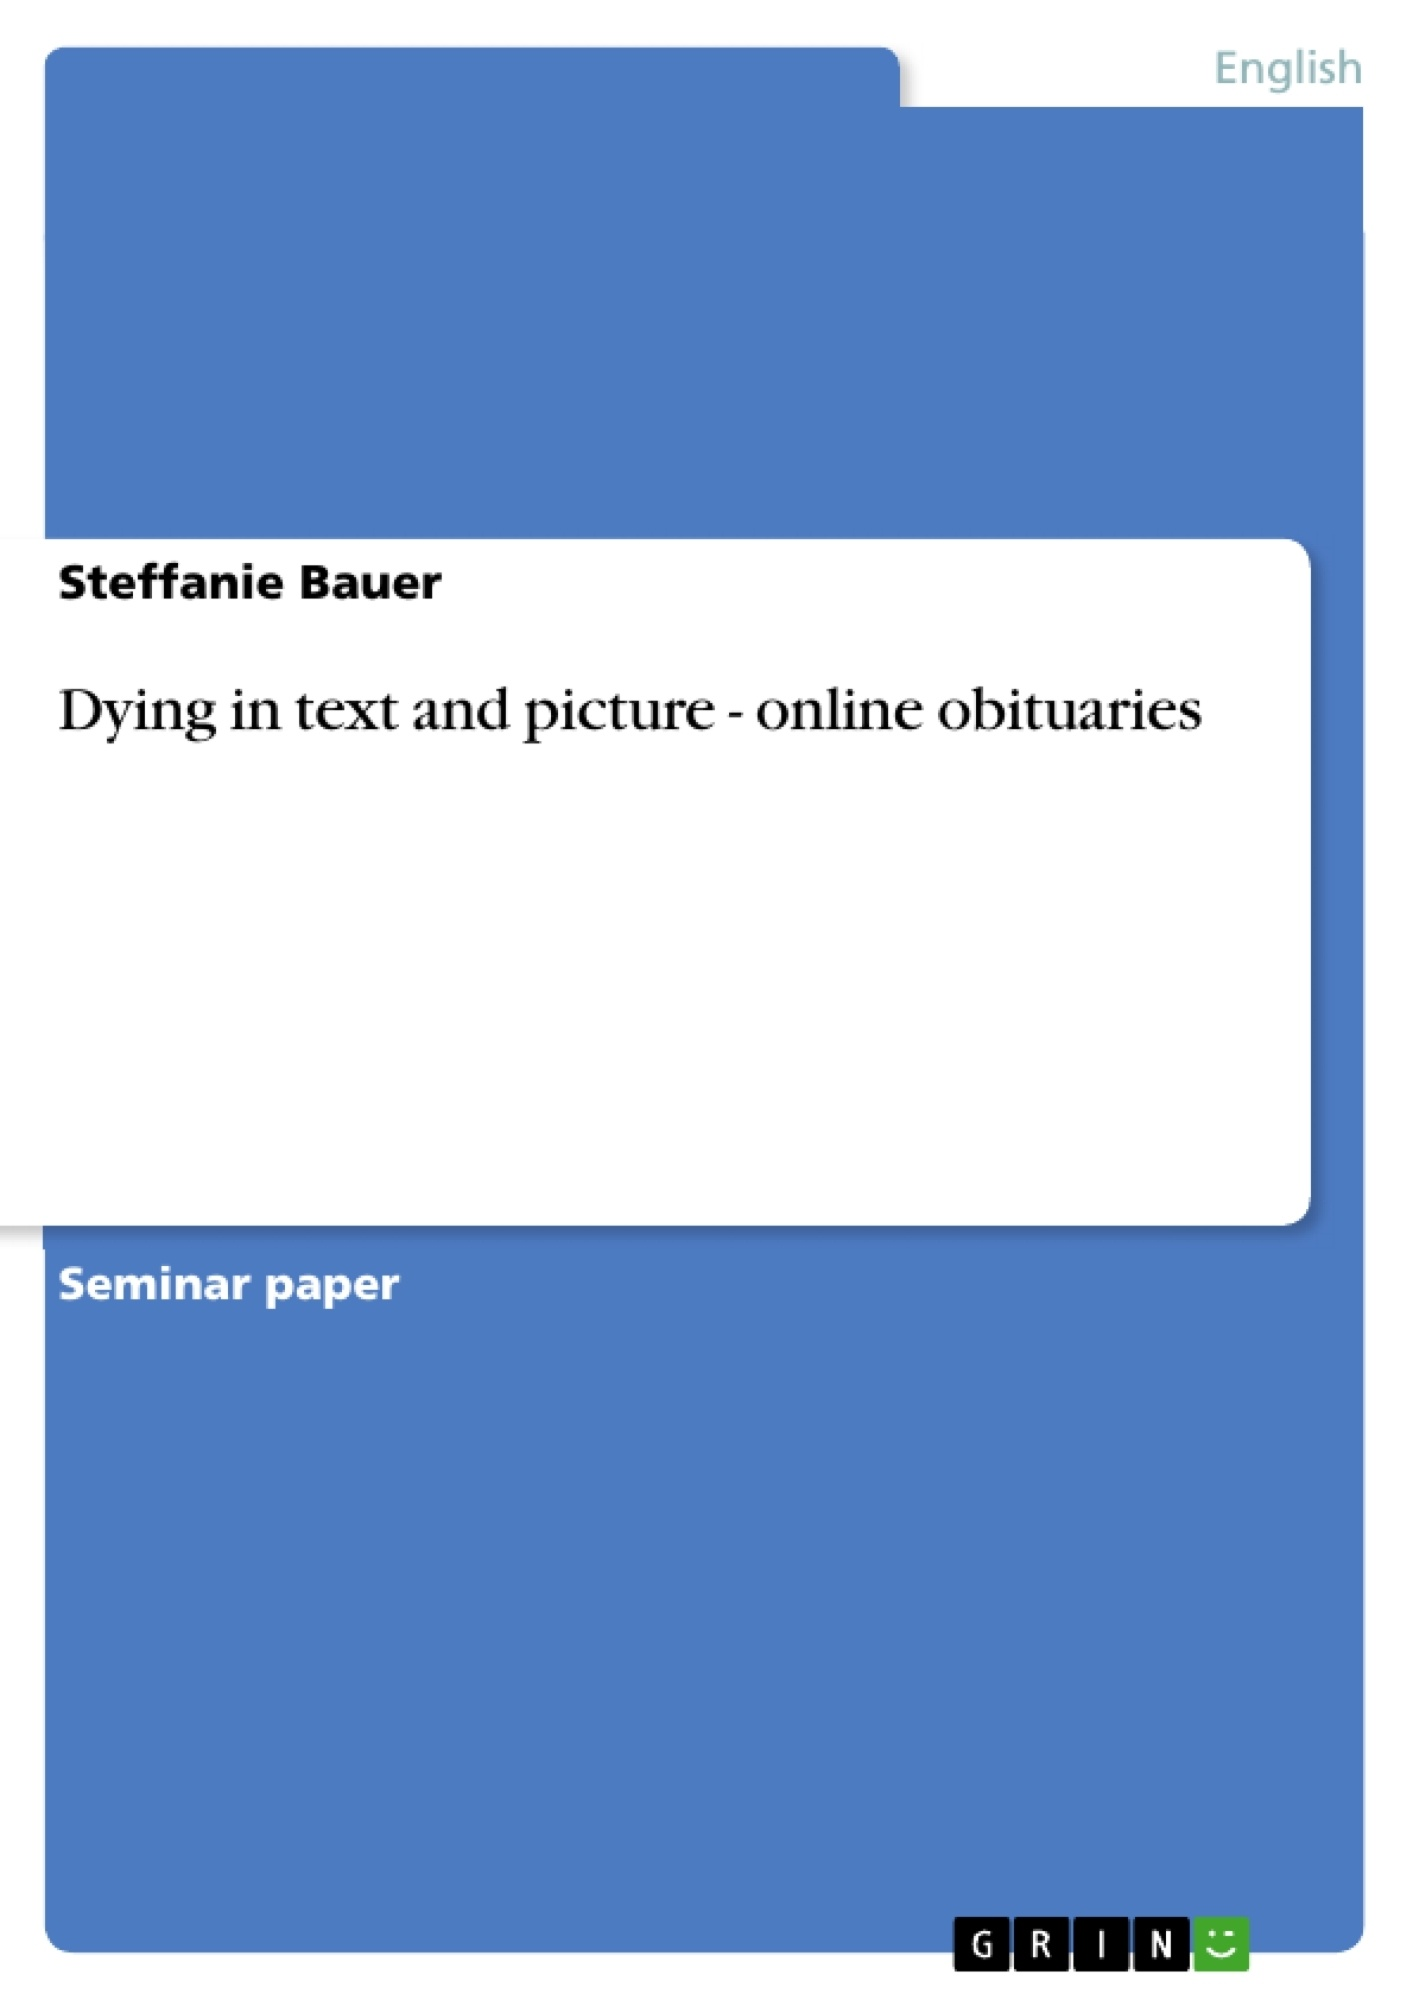 Title: Dying in text and picture - online obituaries